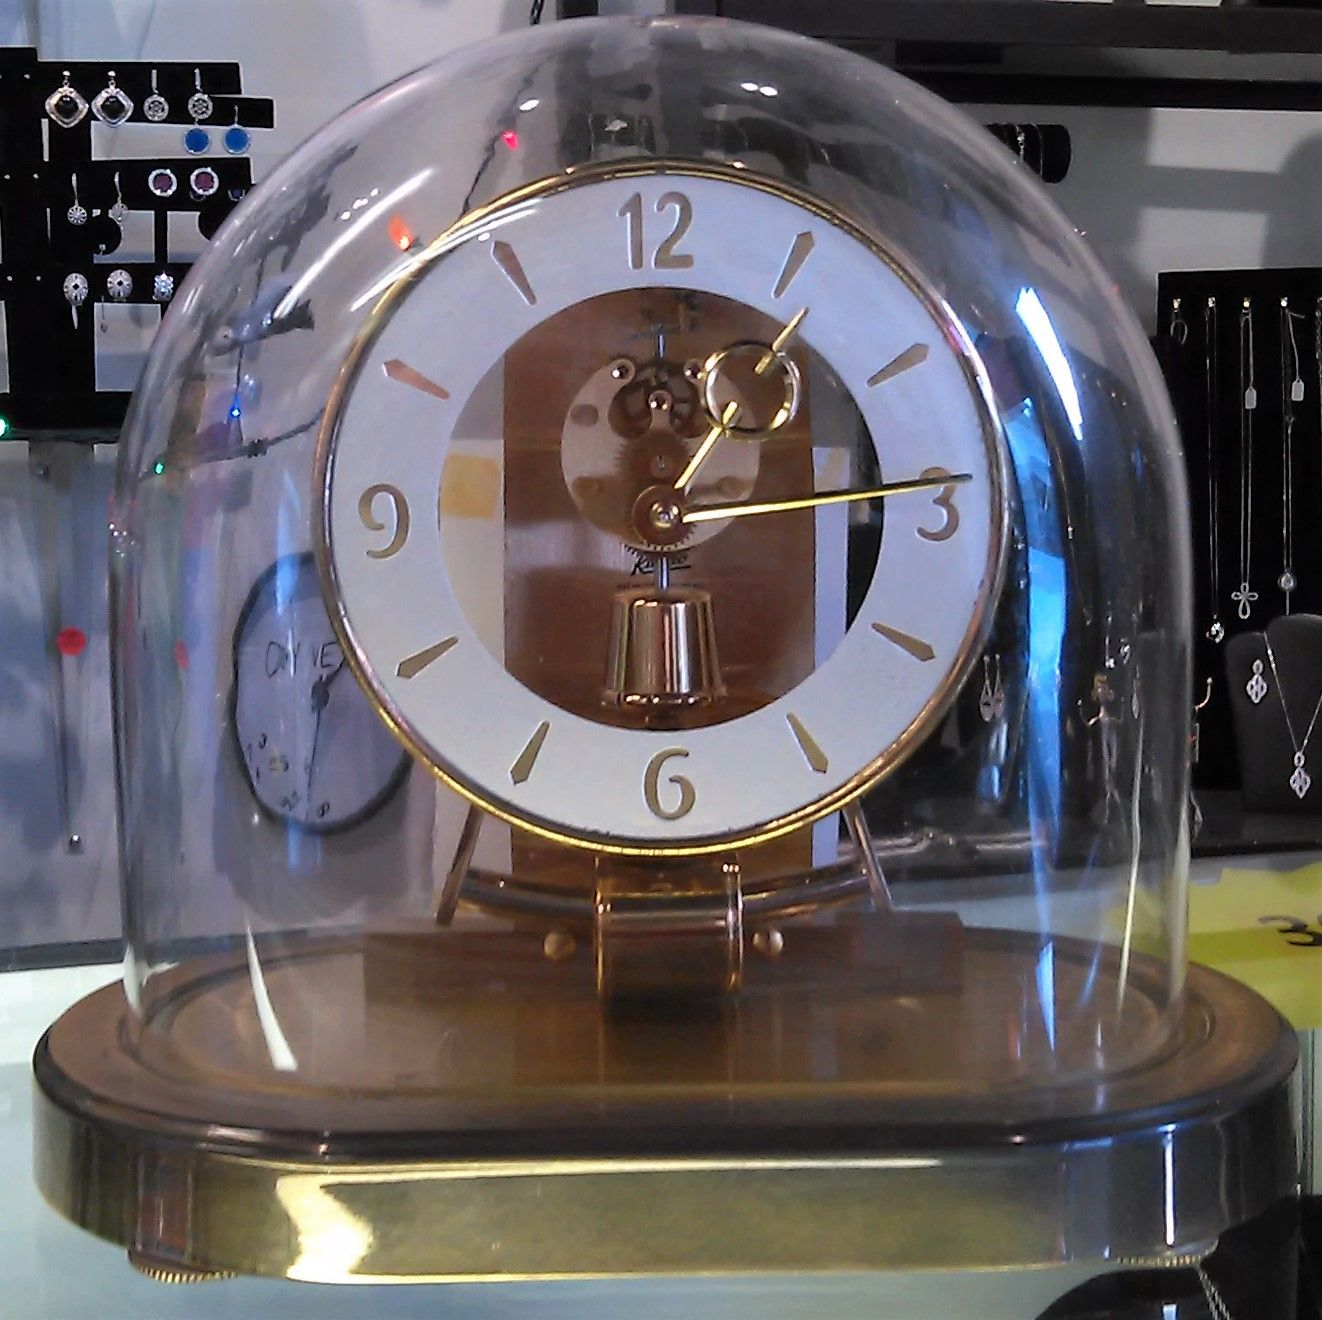 Repair of the week early obergfell table clock we replaced the vintage battery pack with an updated version